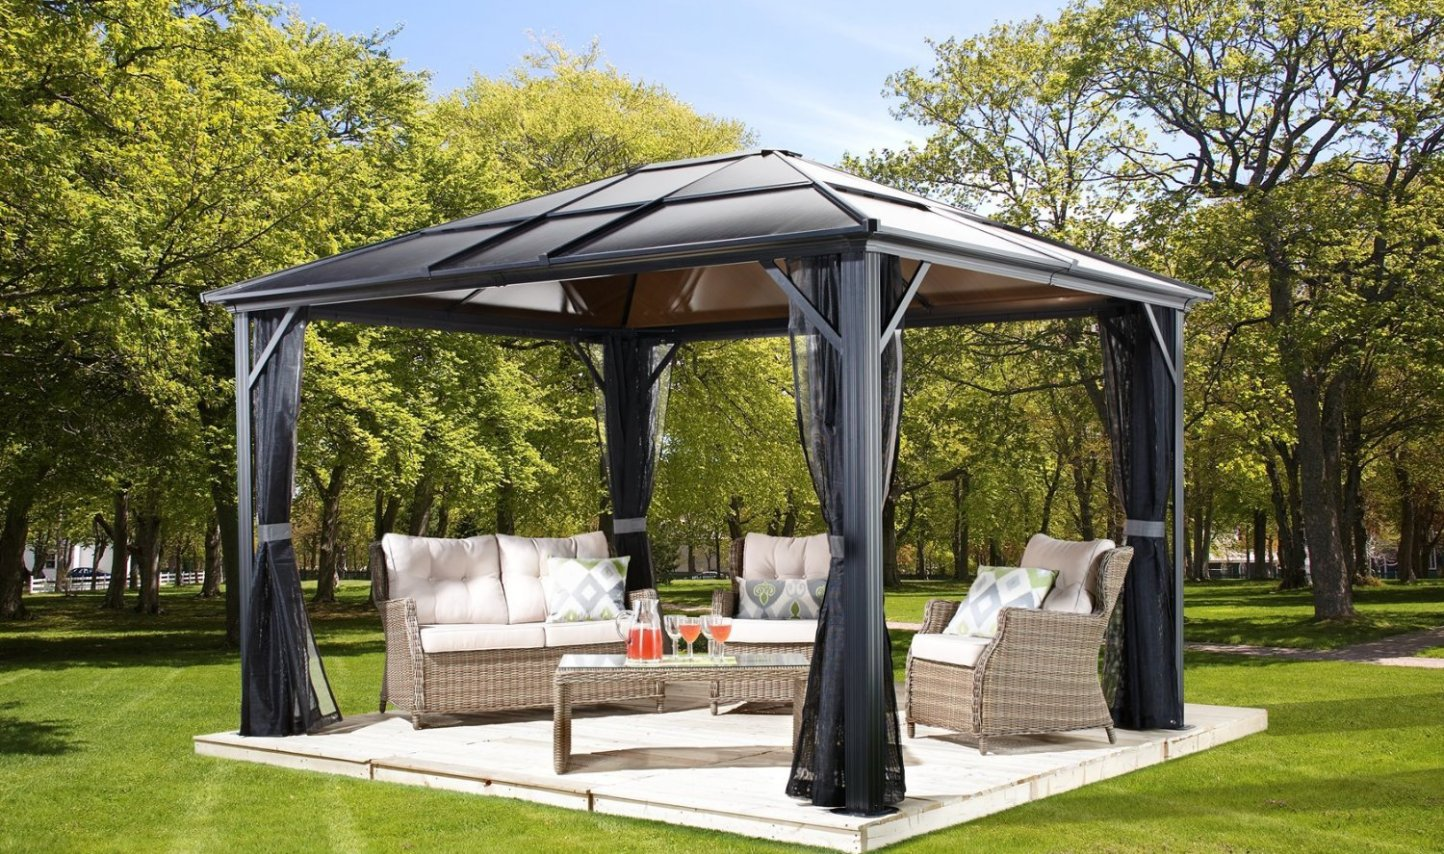 15 X 20 Gazebo | 8x10 Gazebo | Screened Gazebo